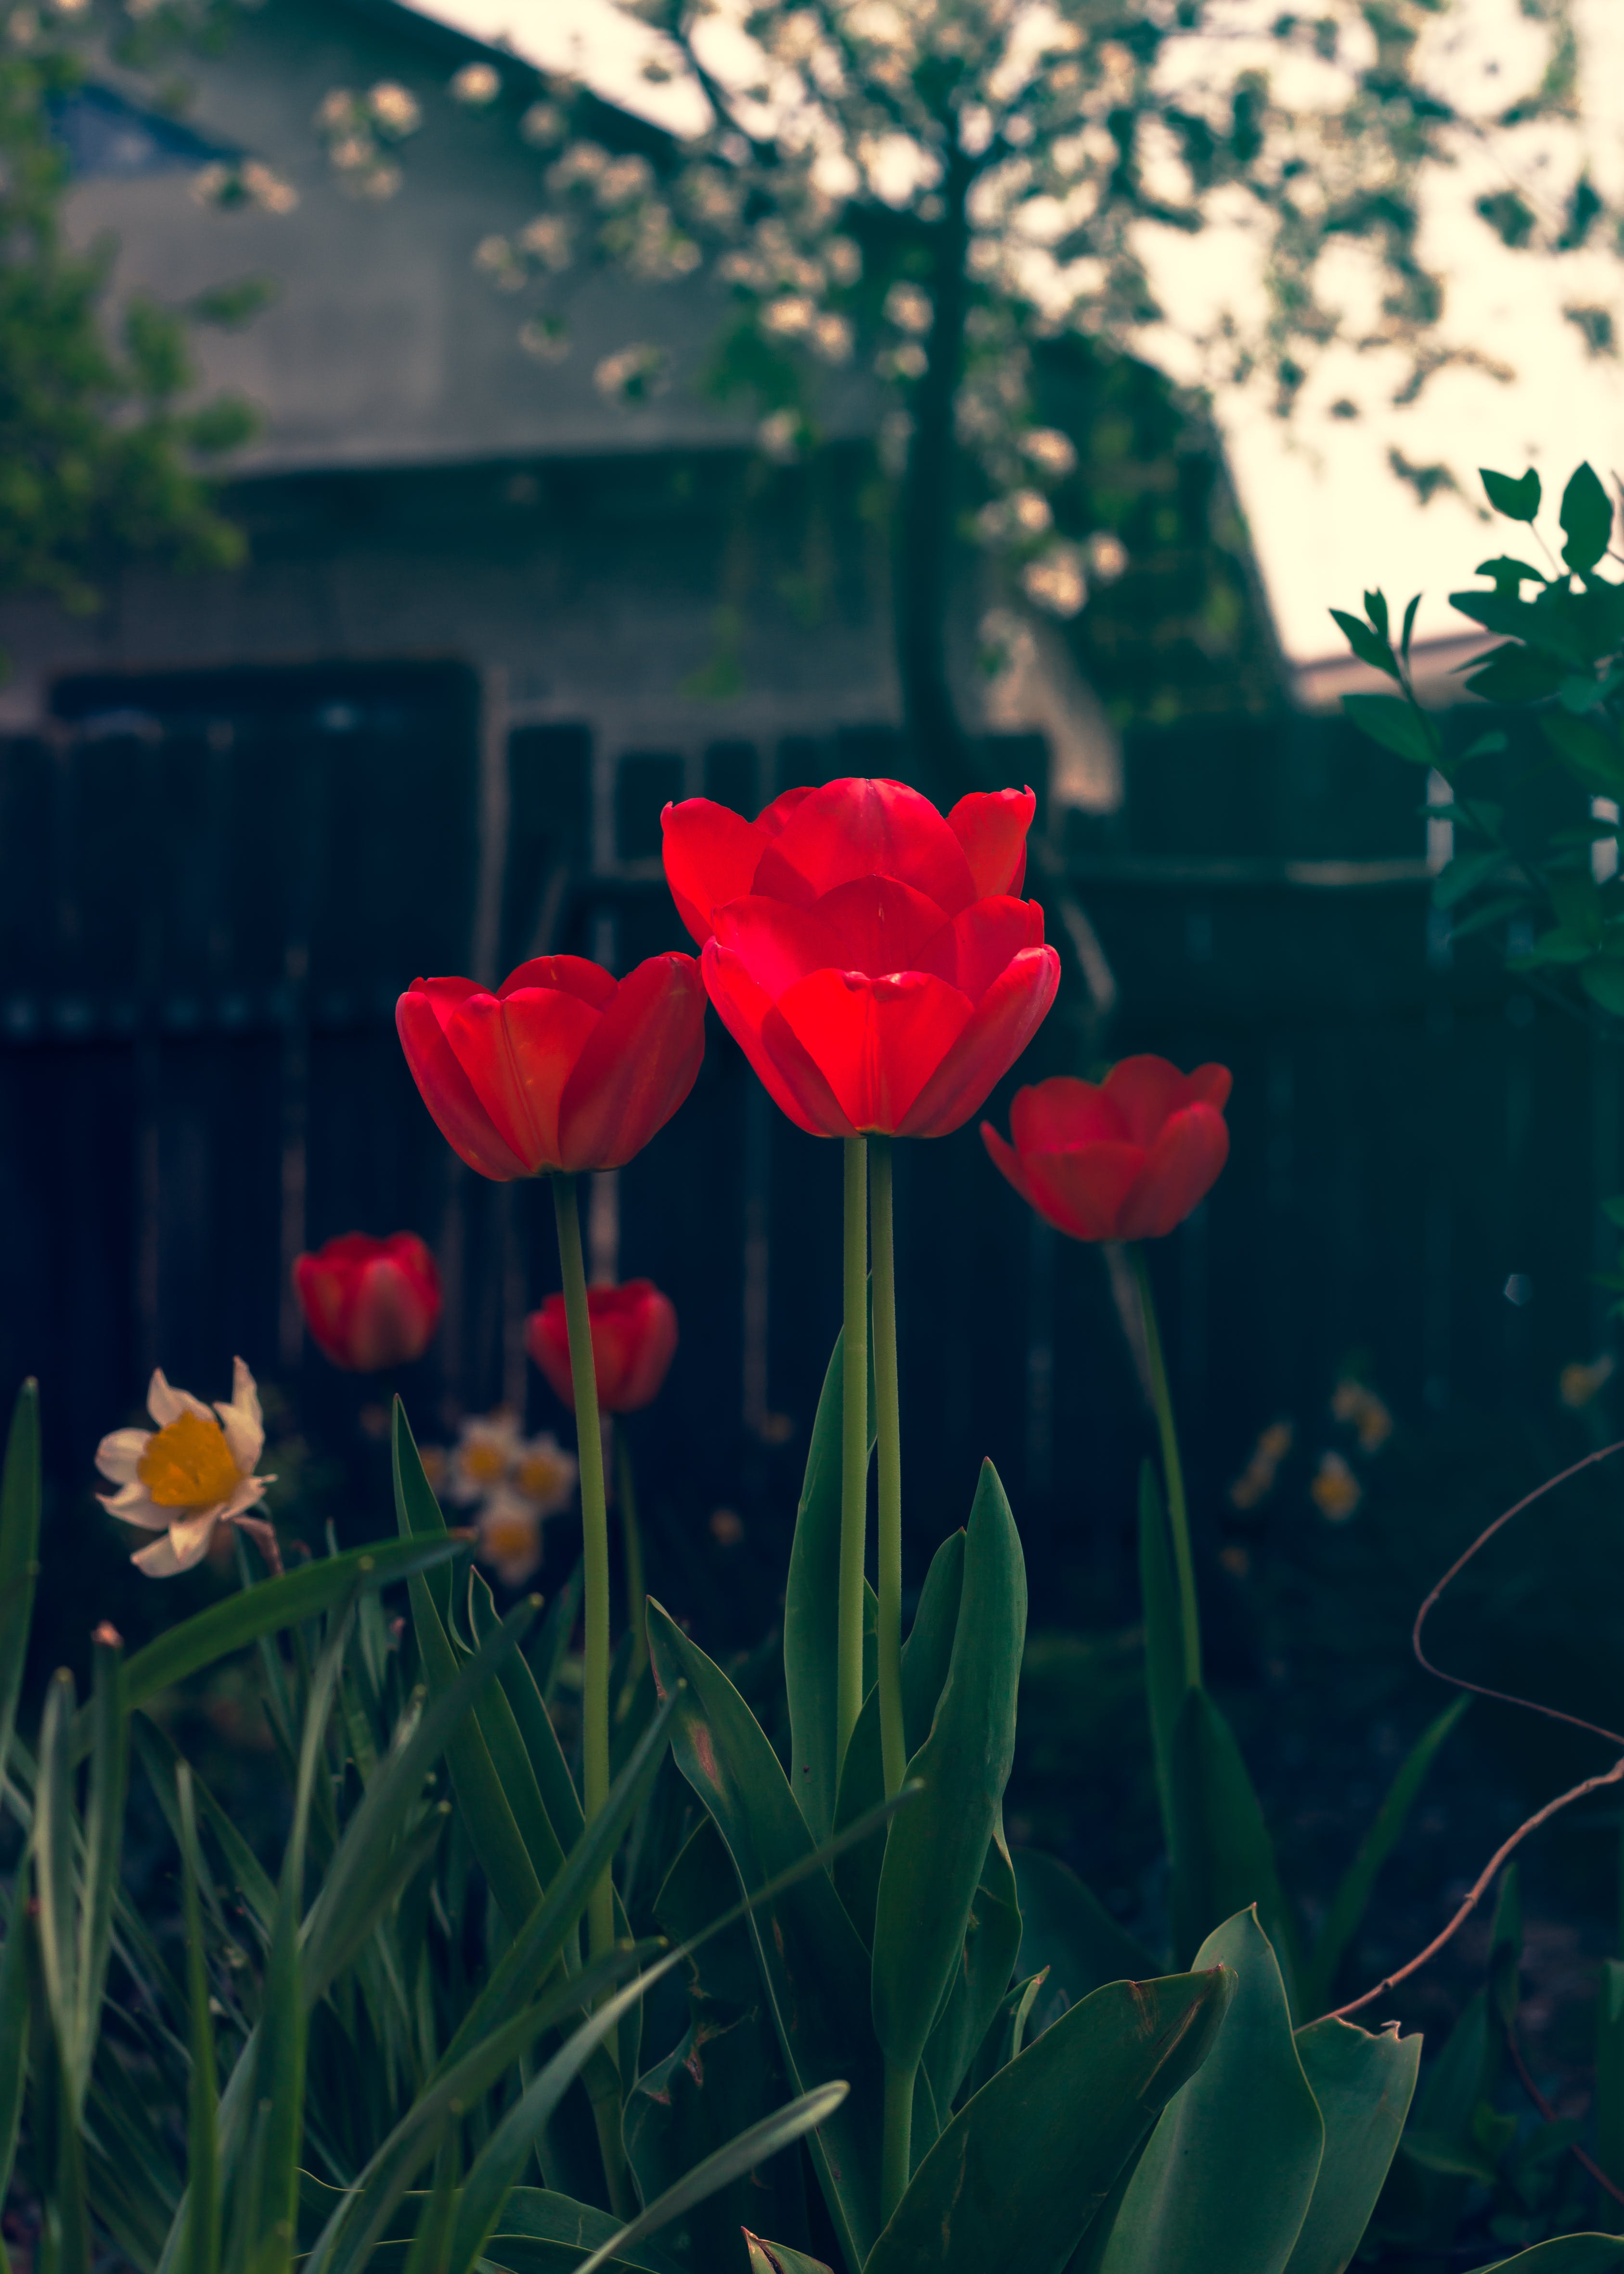 Free stock photo of flowers, garden, green, nature